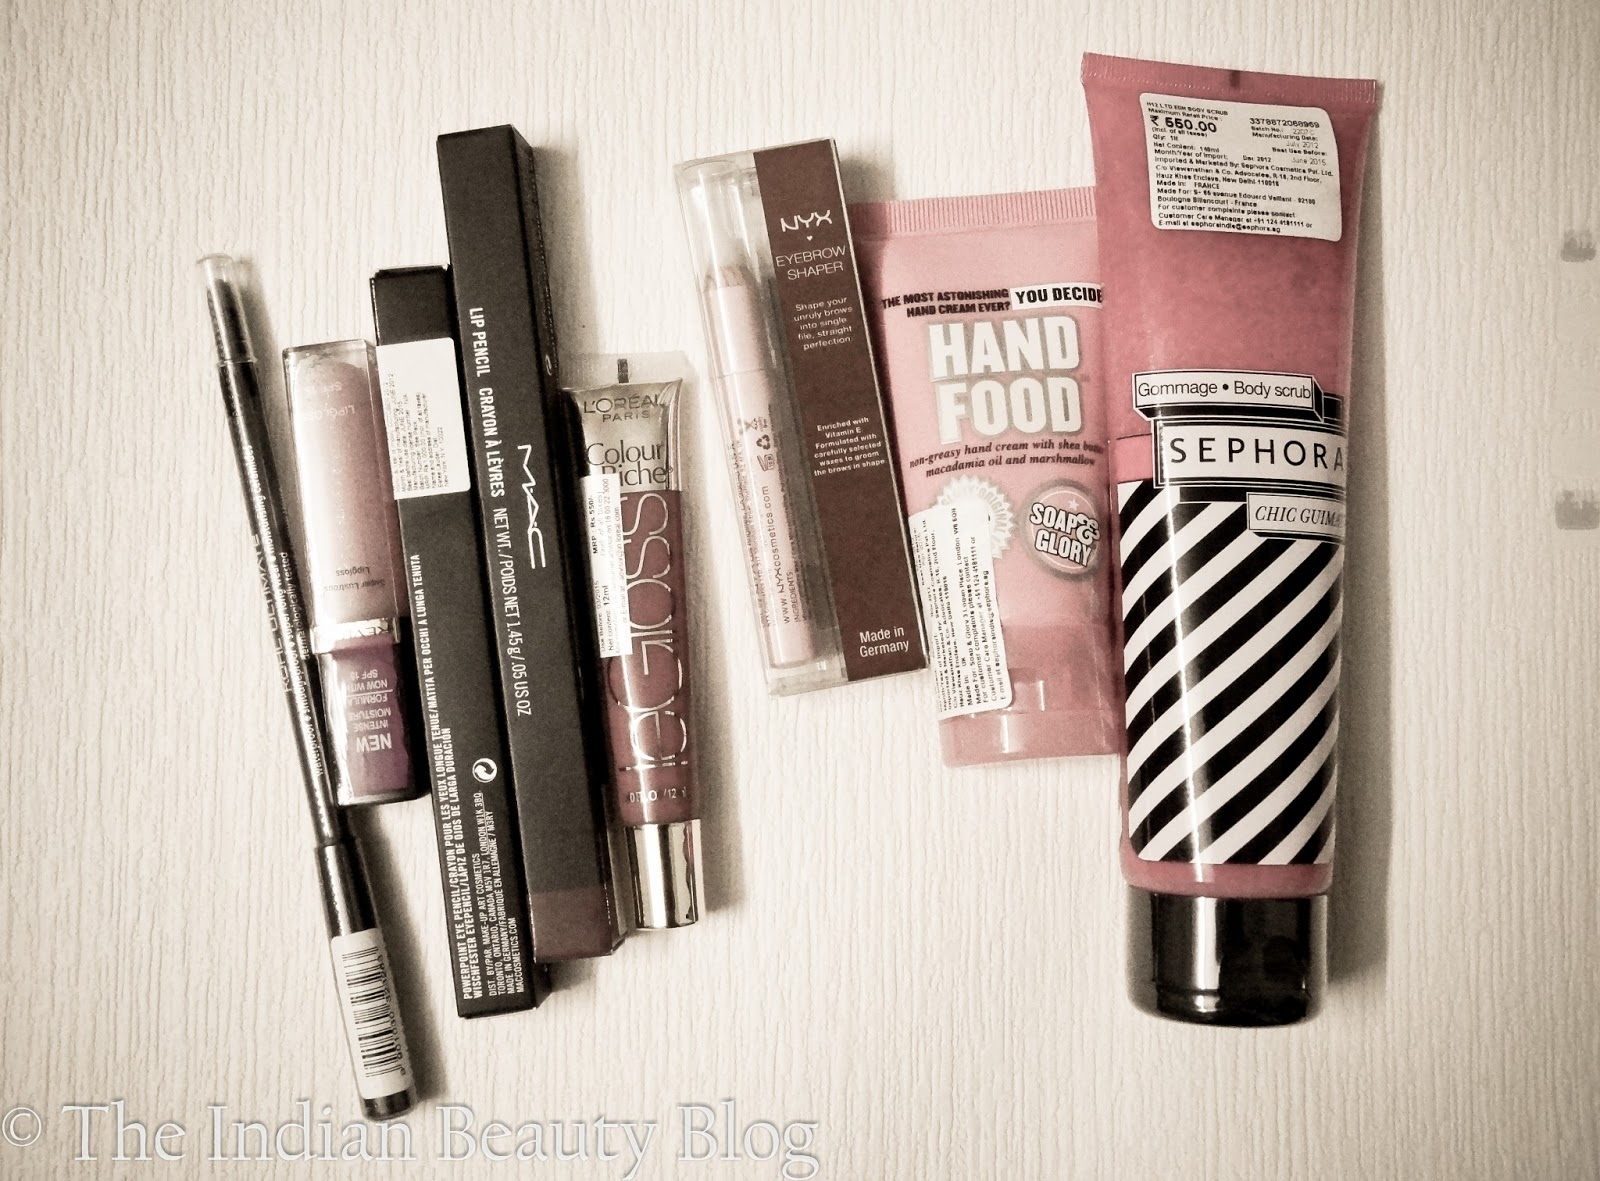 Coz I went to Sephora too! And what I had to bear! - The Indian ...